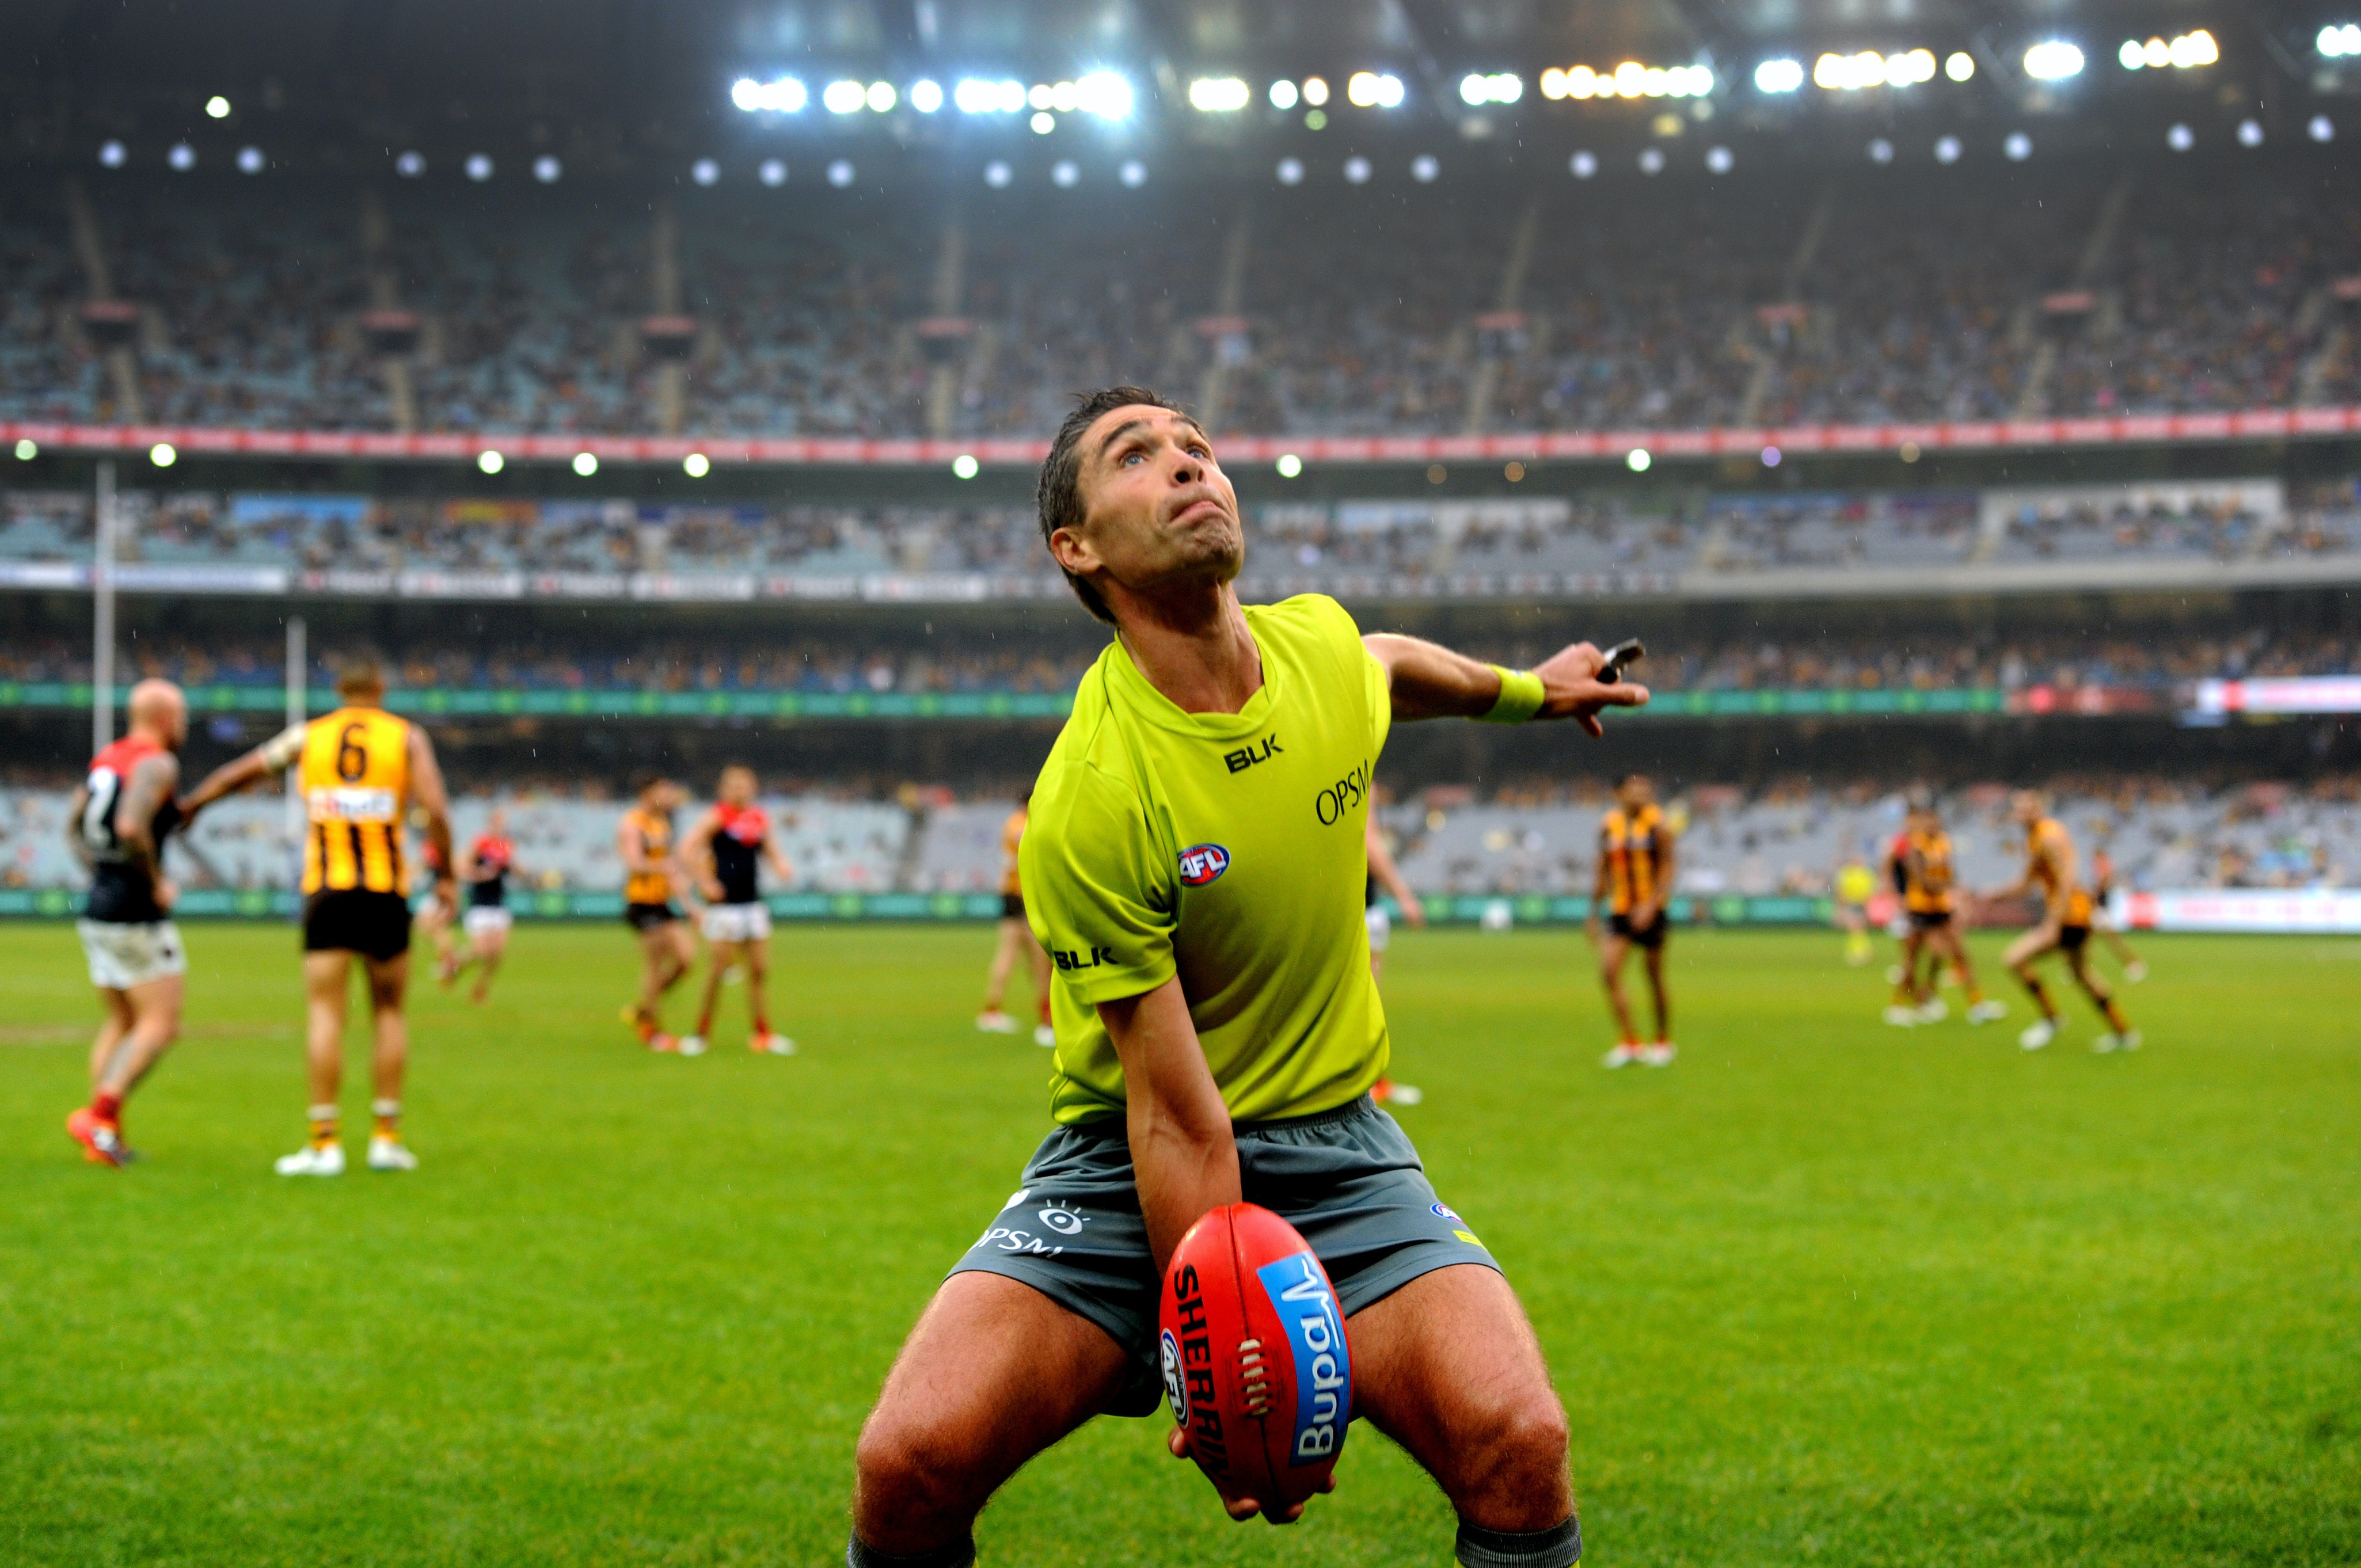 Whichever Way You Look At It, Australian Rules Football Makes A Clear  Difference For The Better In Peopleu0027s Lives. AAP/Joe Castro